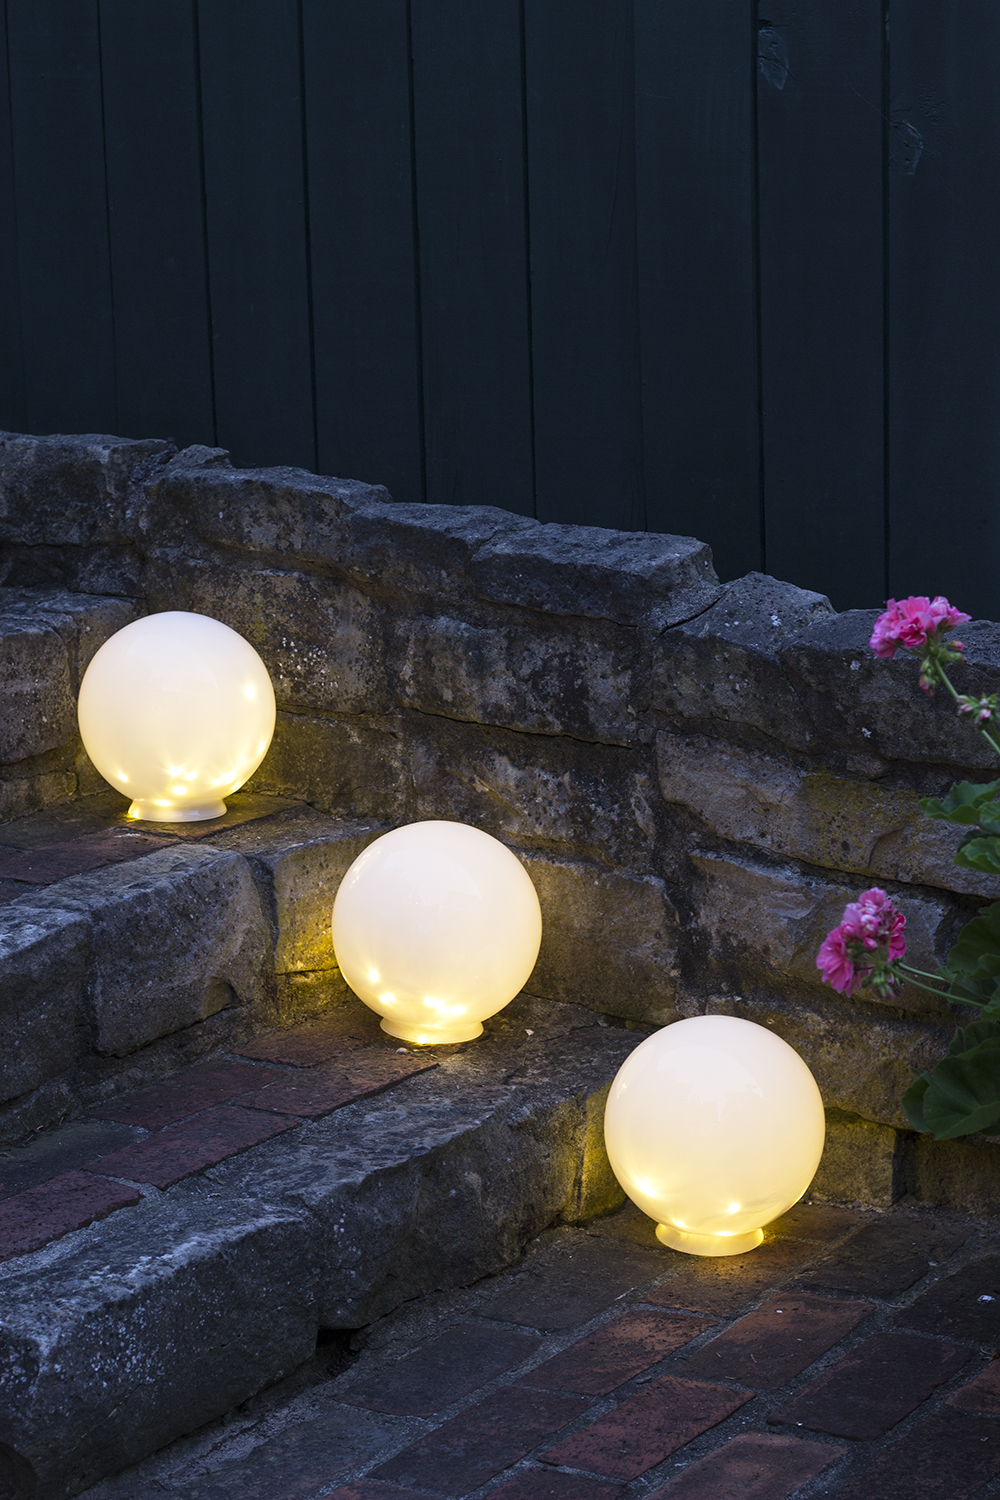 Easy diy outdoor globe lights room for tuesday diy outdoor globe lights aloadofball Images